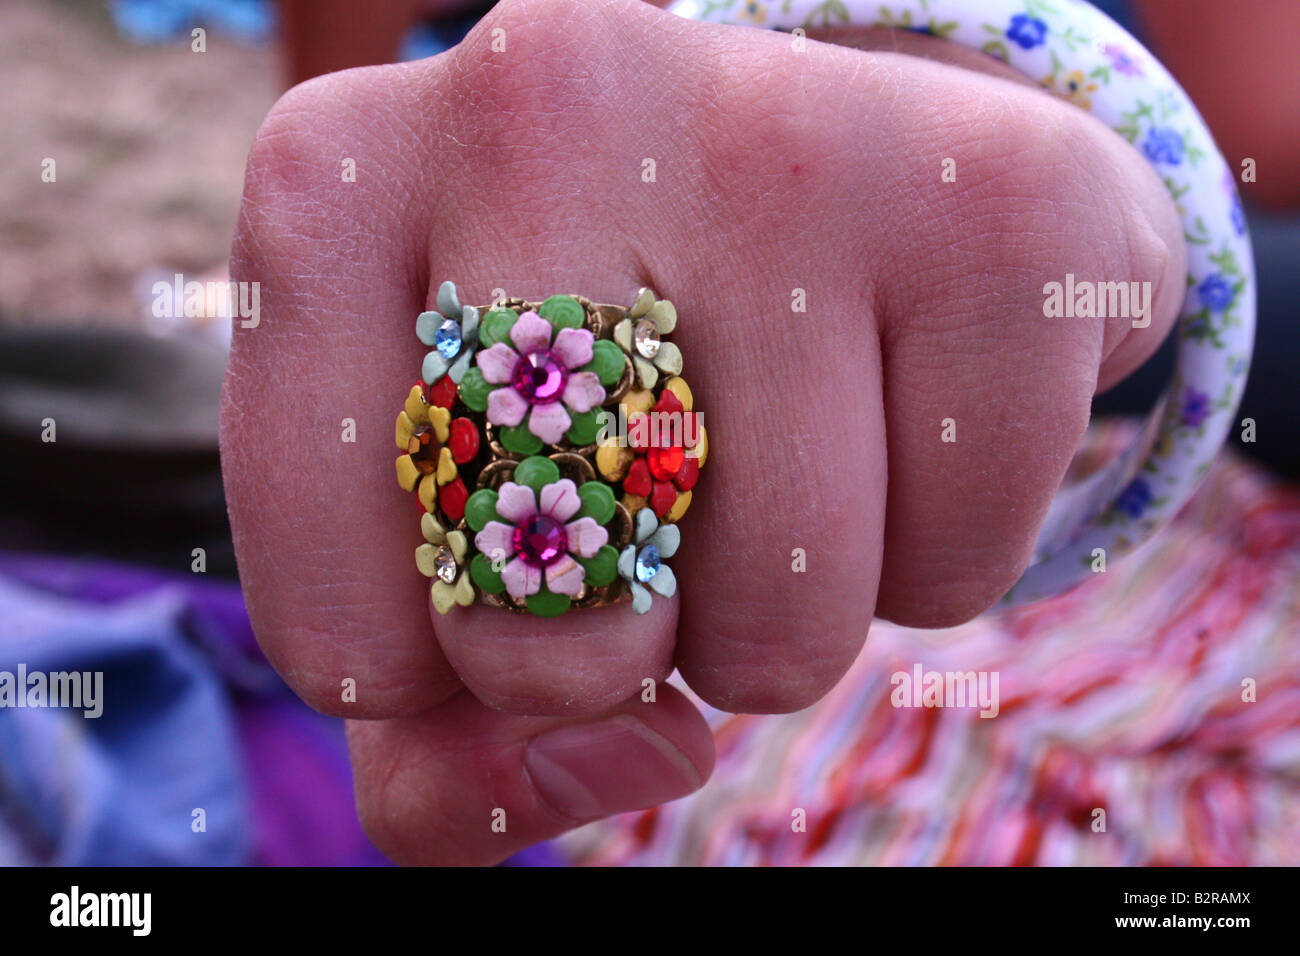 A close-up of a colourful ring on a clenched fist - Stock Image